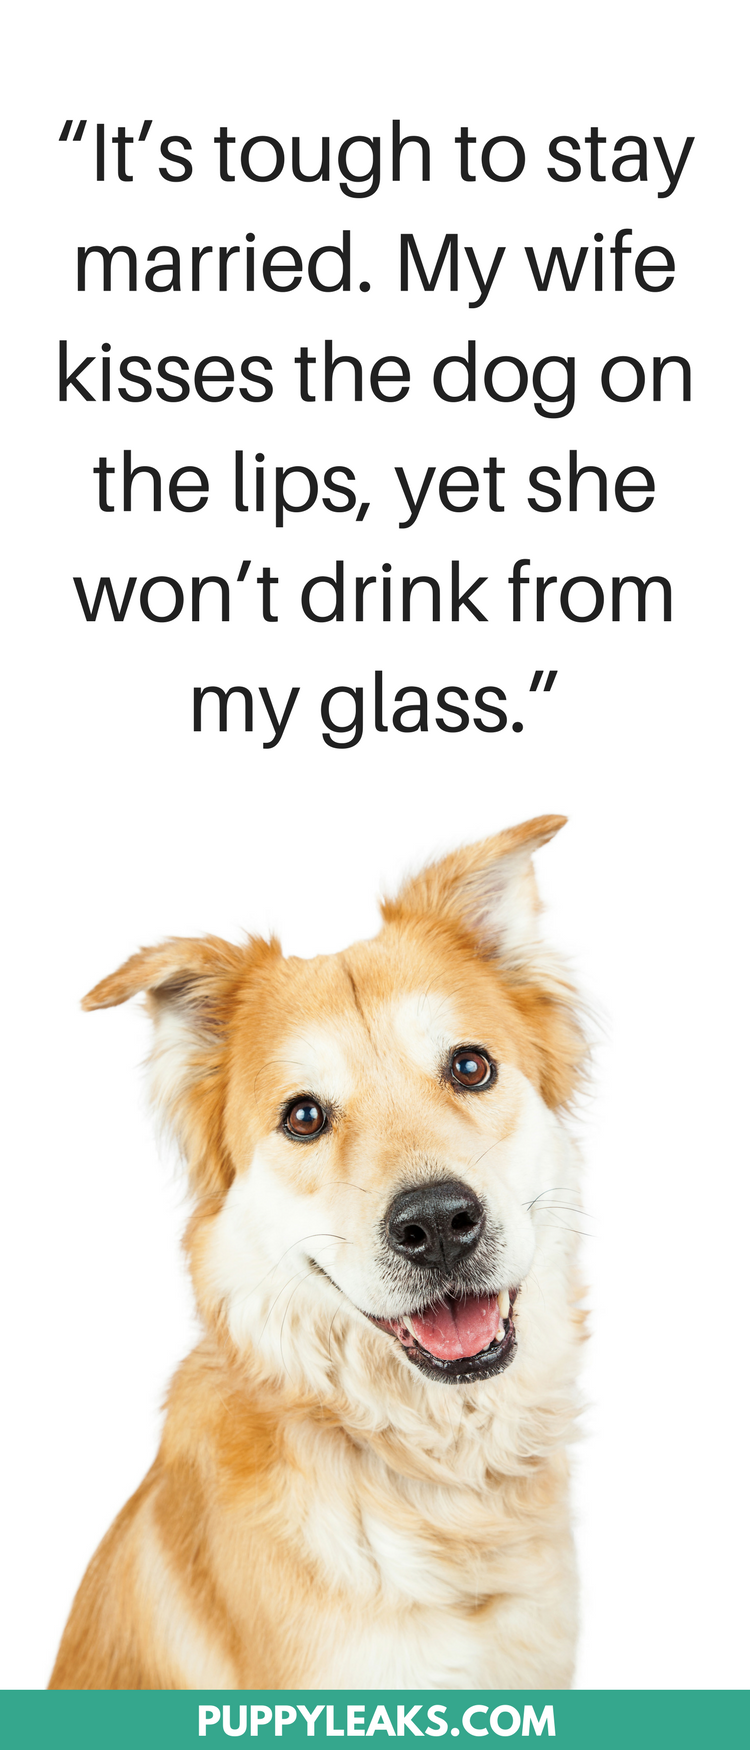 30 Cute & Funny Dog Quotes Dog quotes funny, Dog quotes